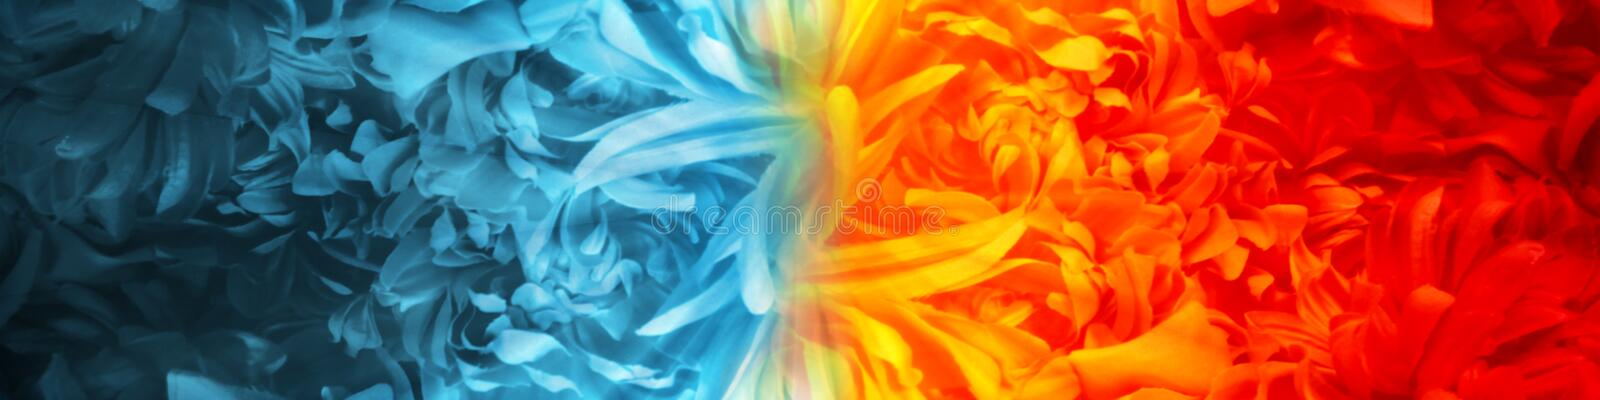 Abstract Fire and Ice element created from flower petals using color theme against vs each other background. stock illustration